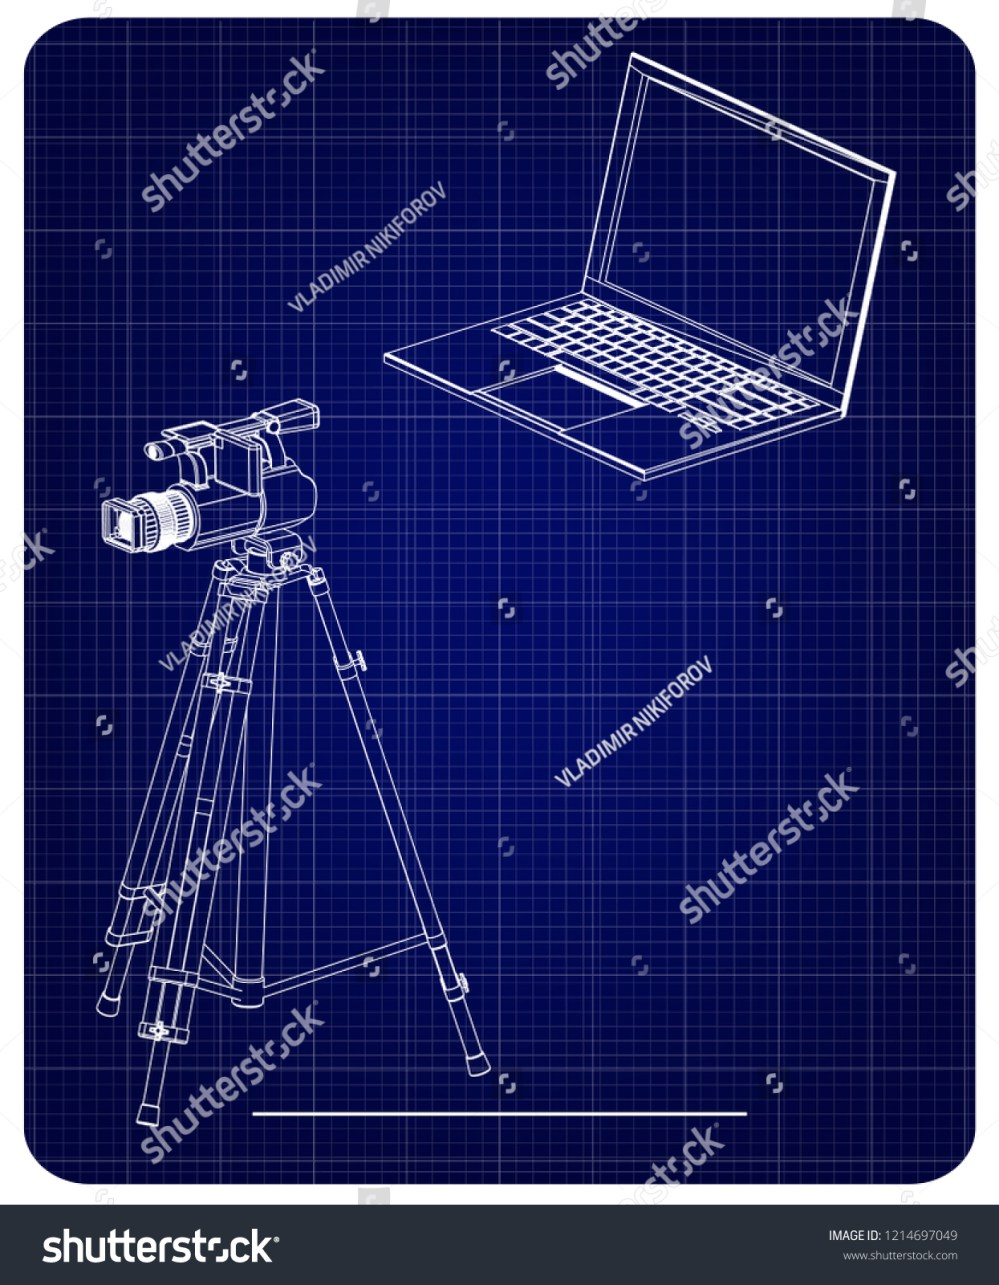 medium resolution of camcorder laptop diagram schematic diagrams laptop inside parts 3 d model laptop camcorder tripod on stock